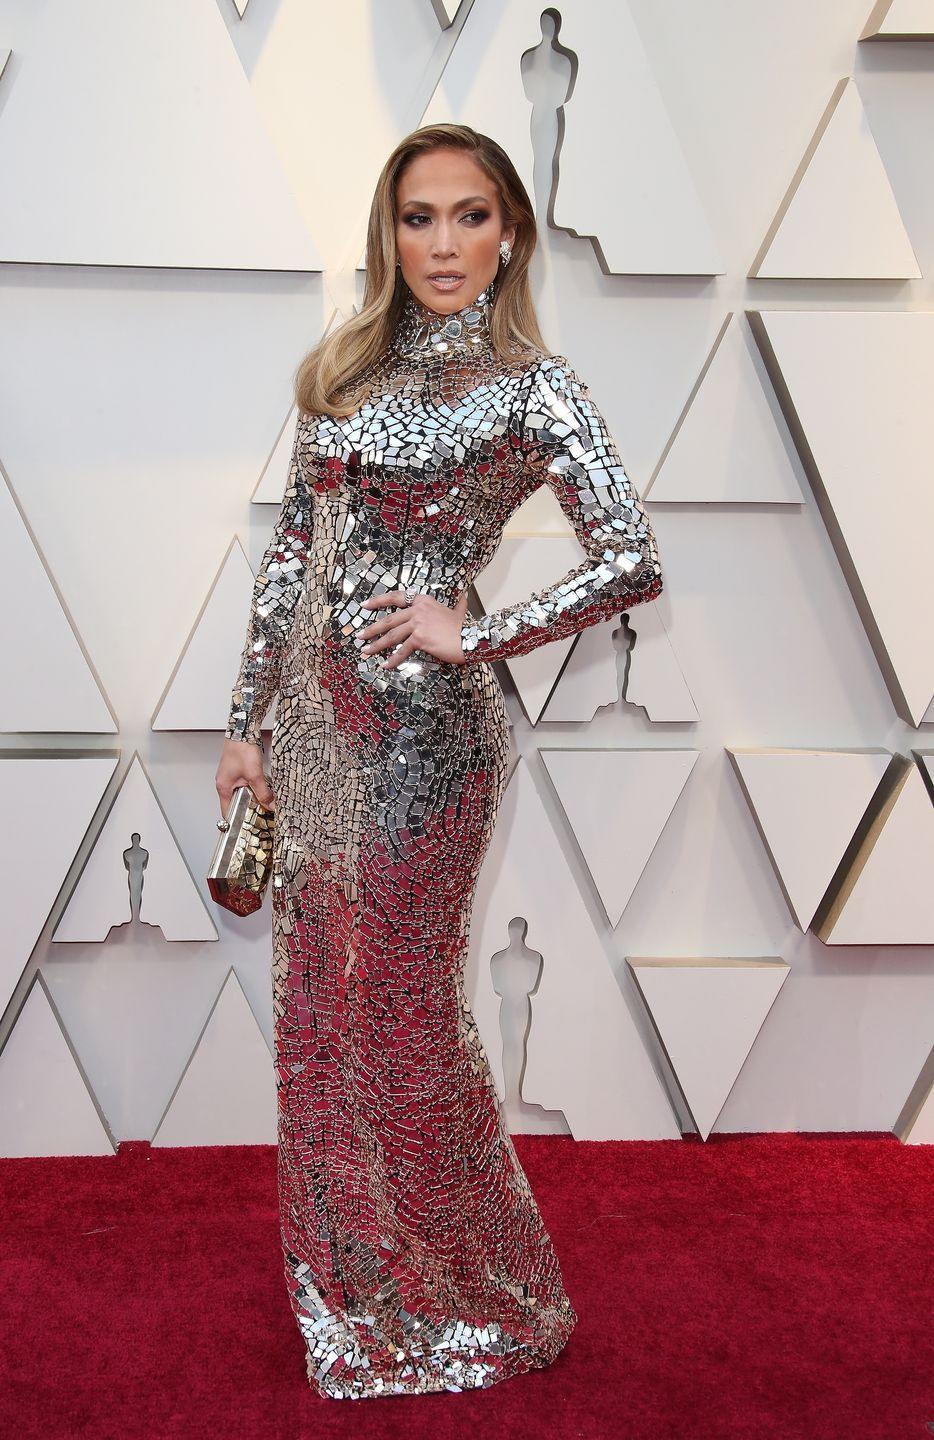 <p>Here J.Lo attends the 91st Academy Awards in a silver dress that has her looking like a shiny trophy herself. The hair, the pose, the face...teach me your ways J.Lo!</p>